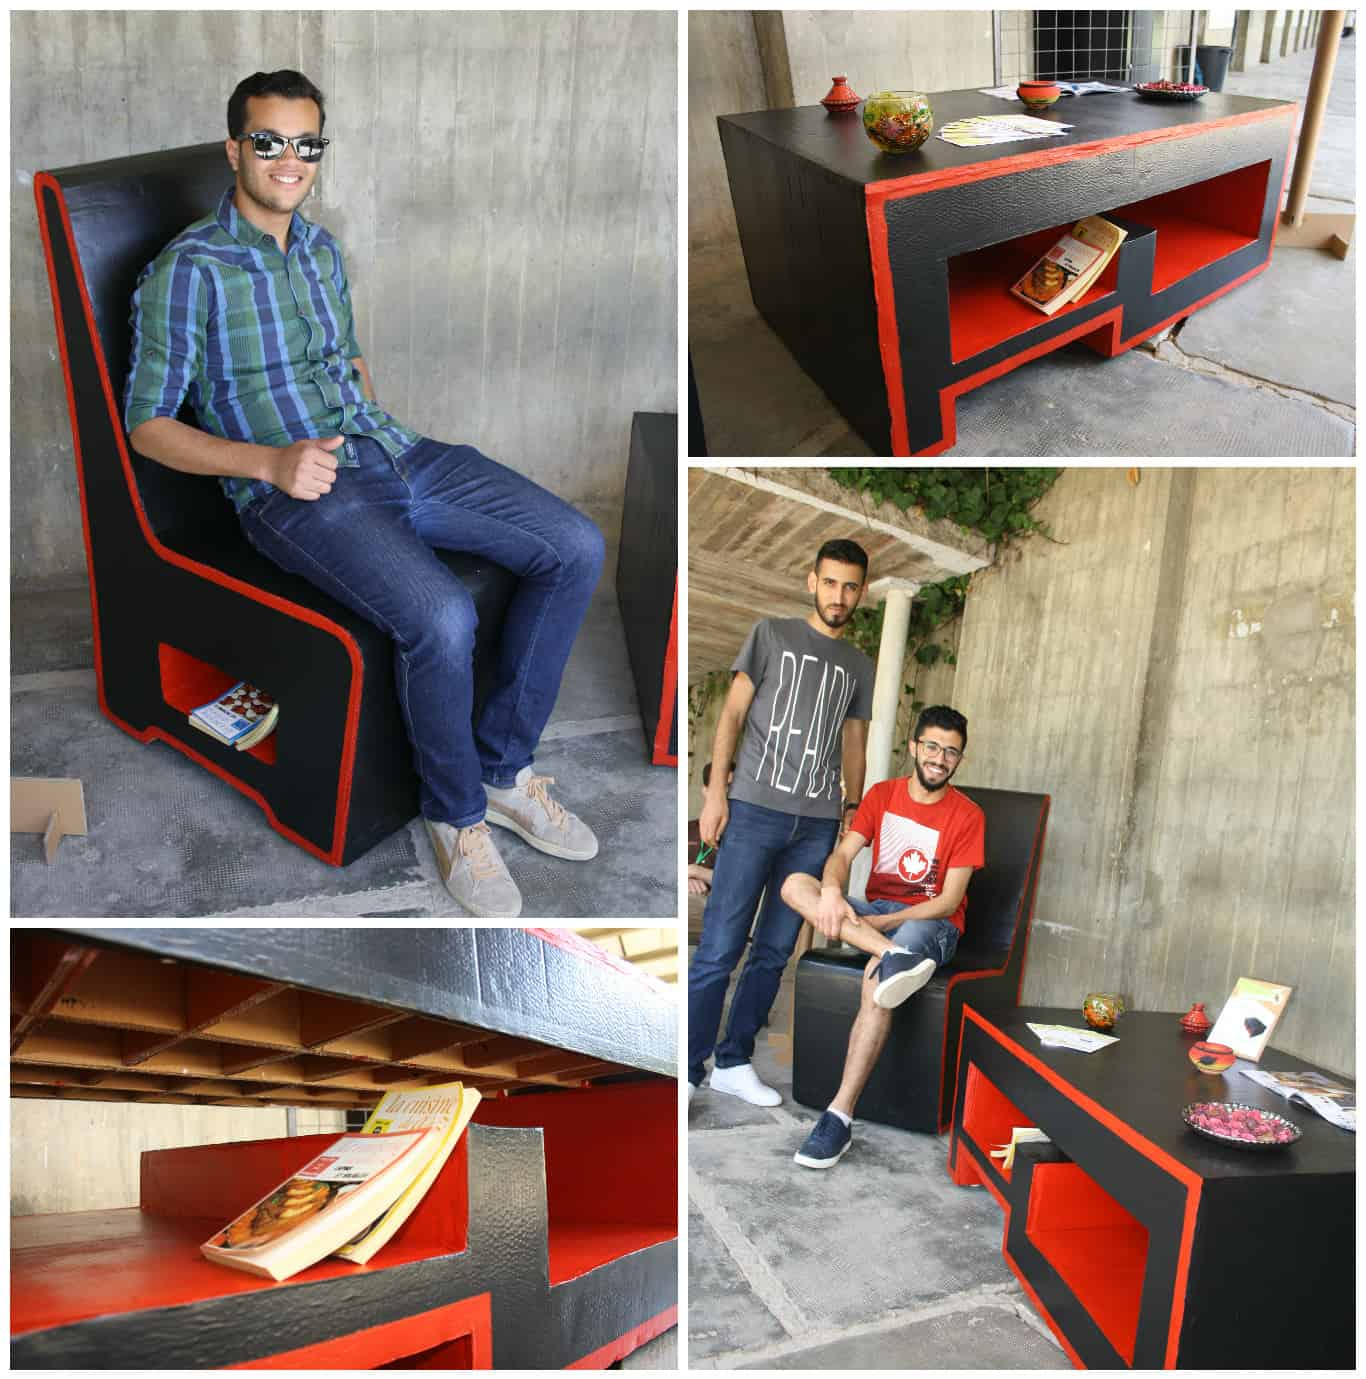 Cardboard furniture techniques how to achieve strength growing up - Cardboard Furniture Techniques How To Achieve Strength Growing Up 35